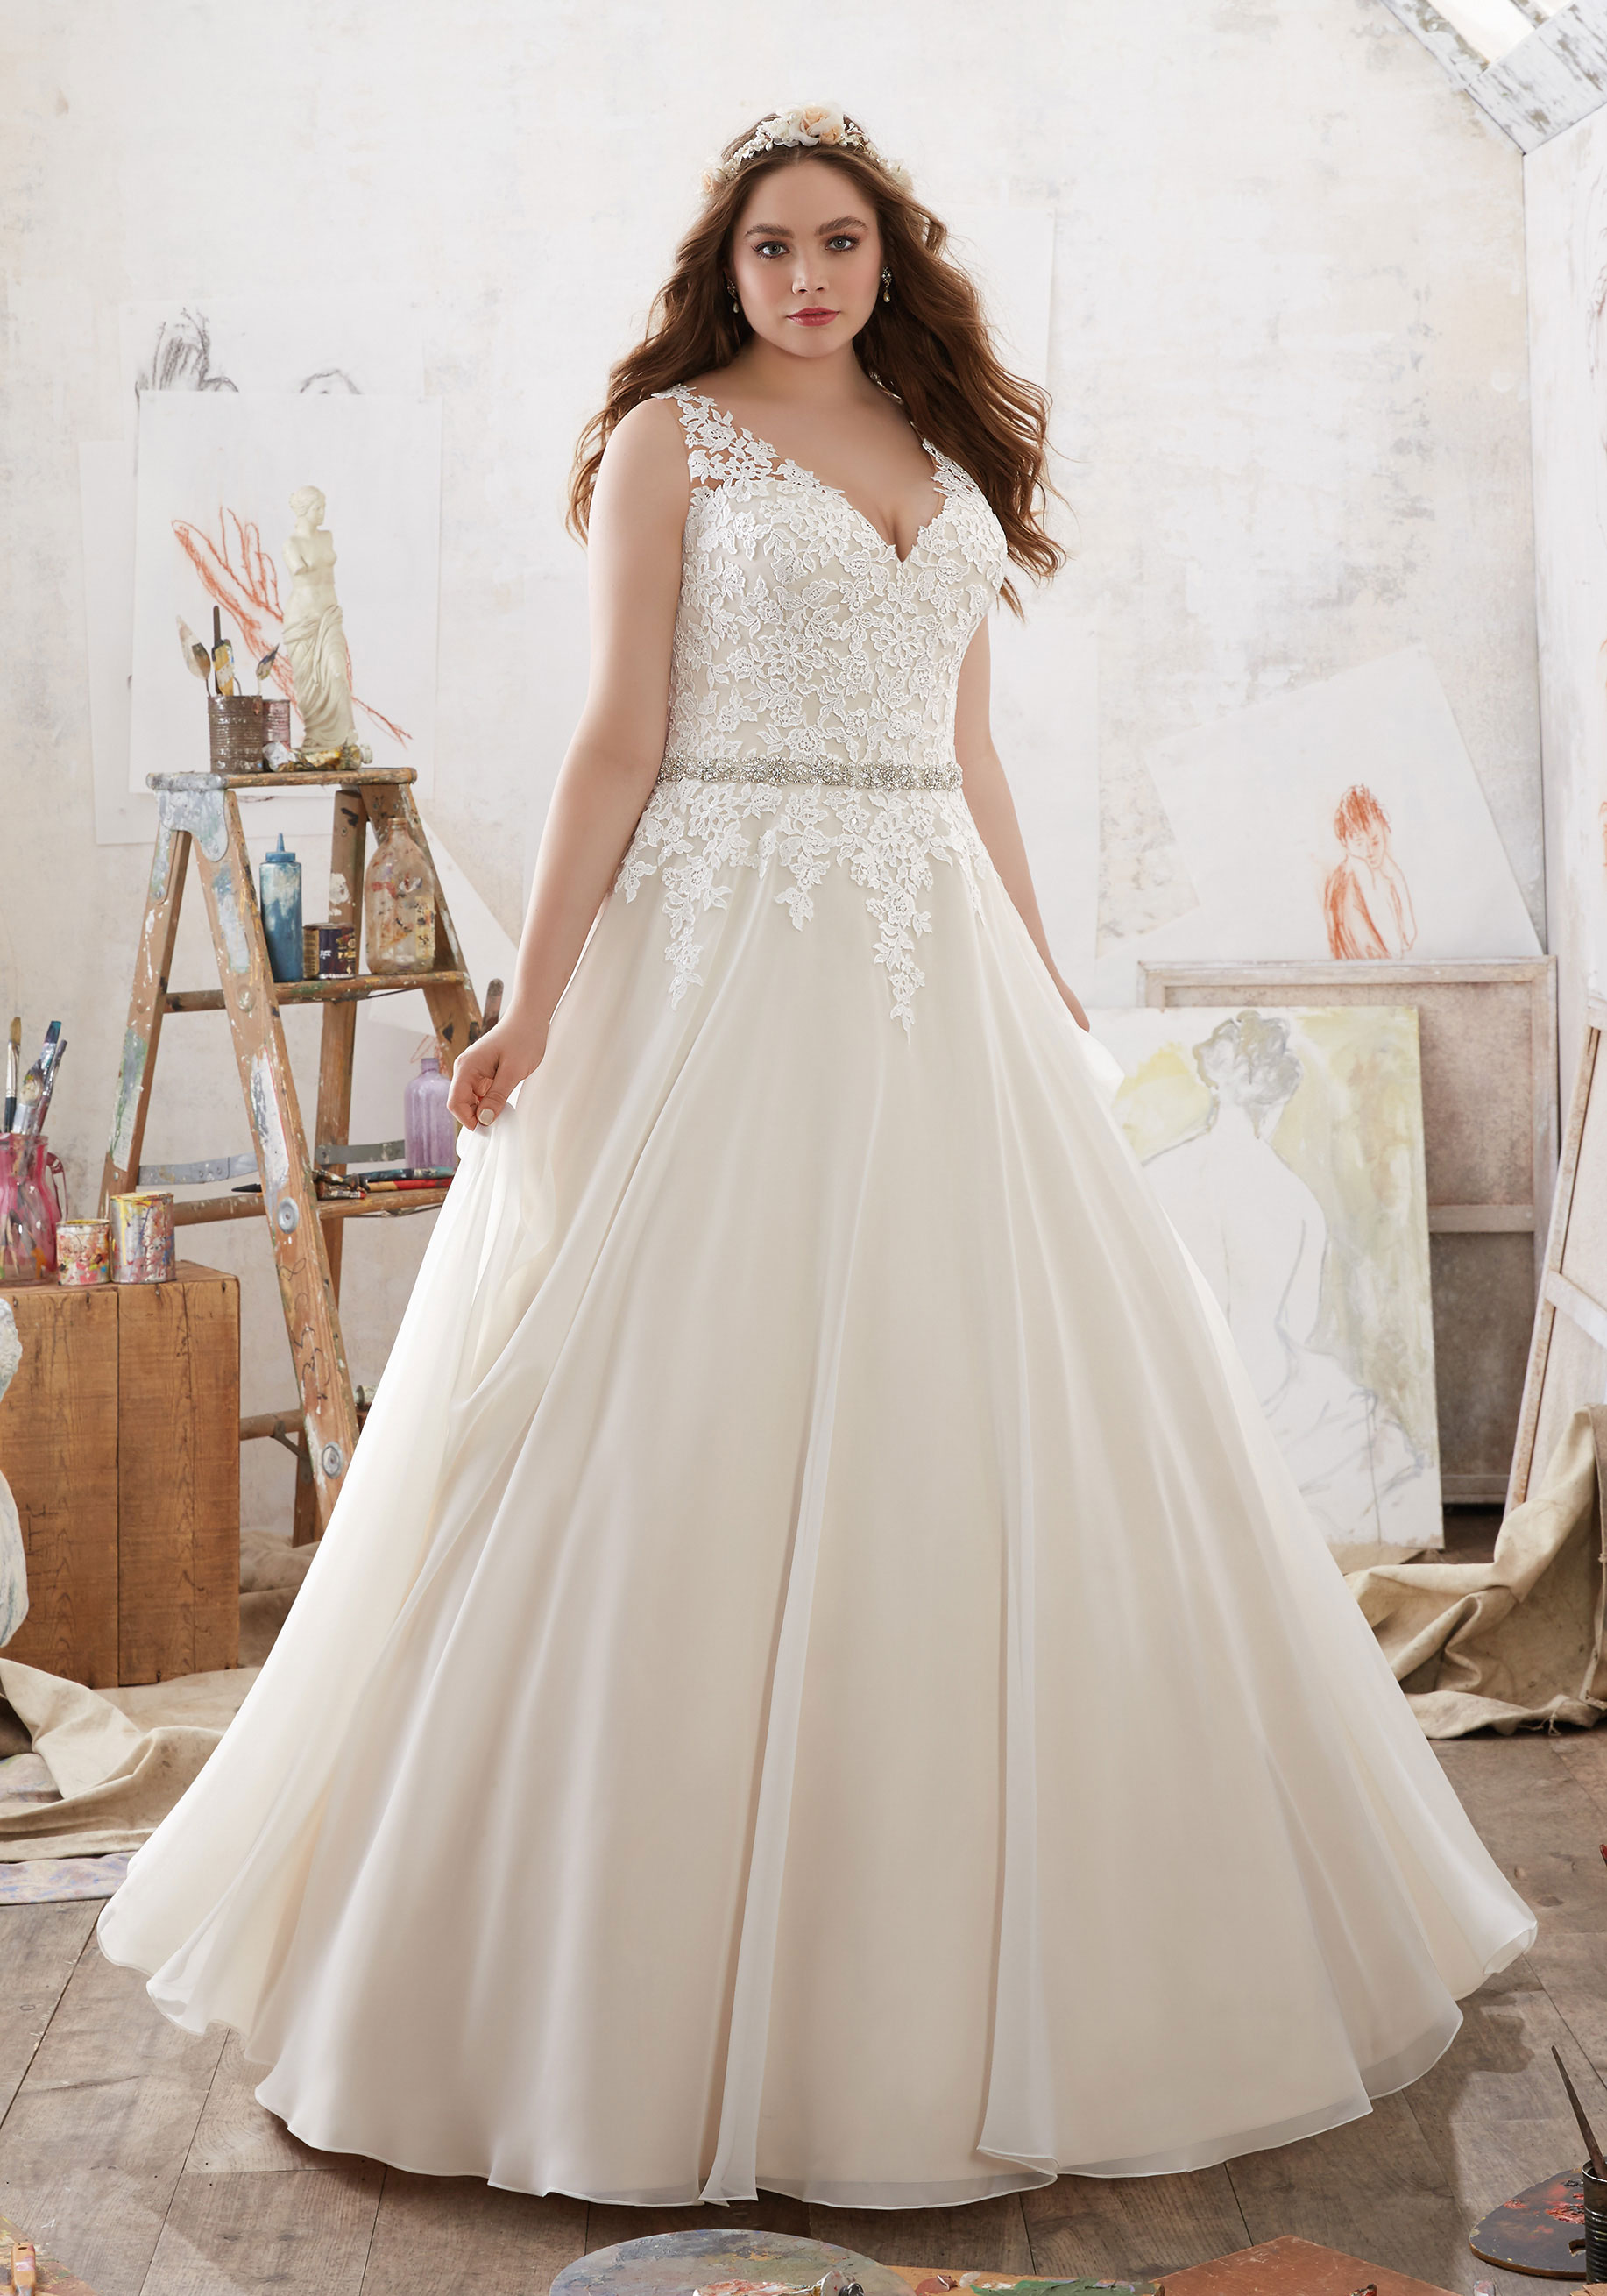 The Most Beautiful Wedding Dress In The Sale: Fitting Appointments To Win!